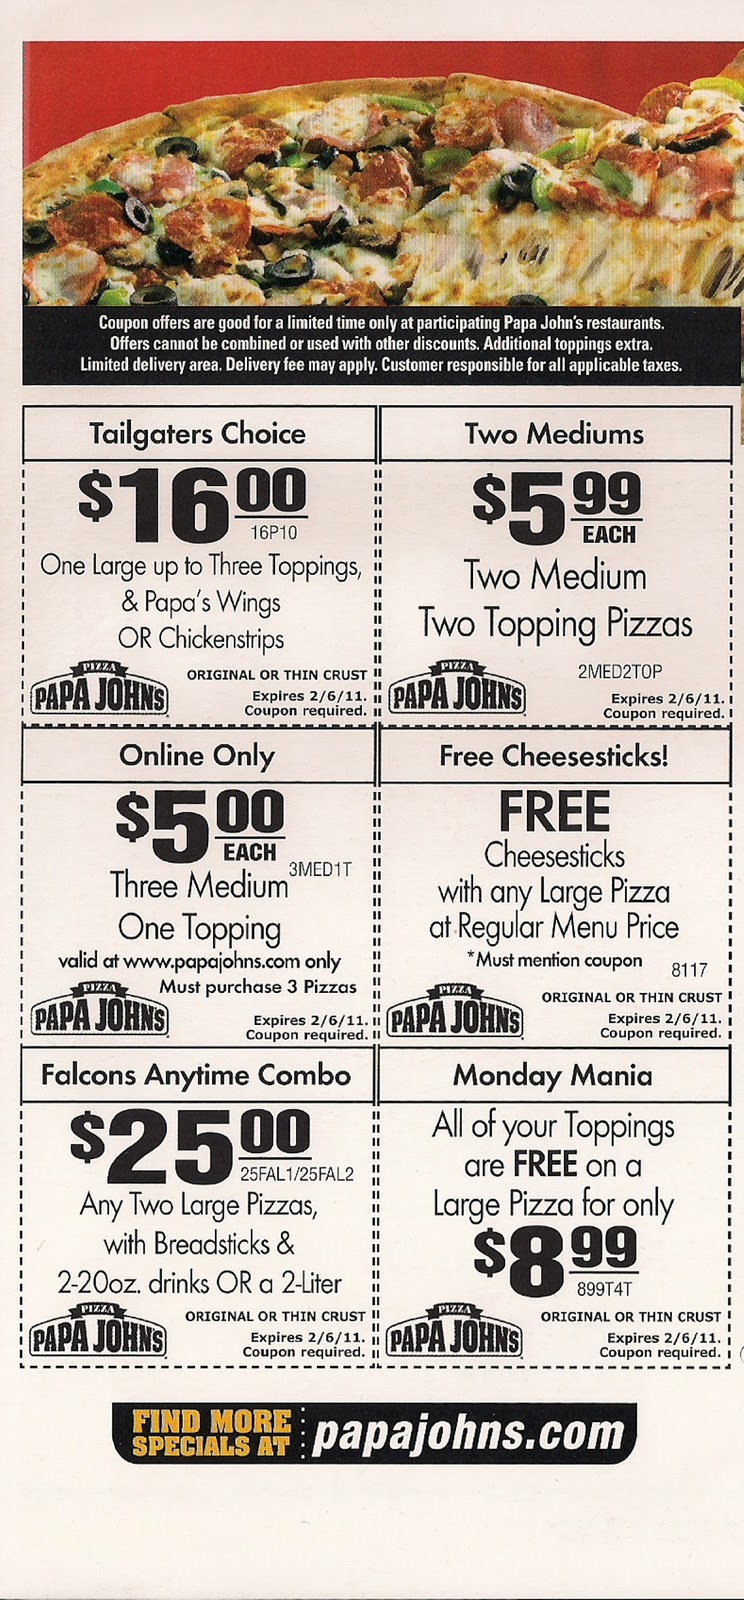 OfferEater.com: Papa Johns coupon codes, Three Medium one topping ...